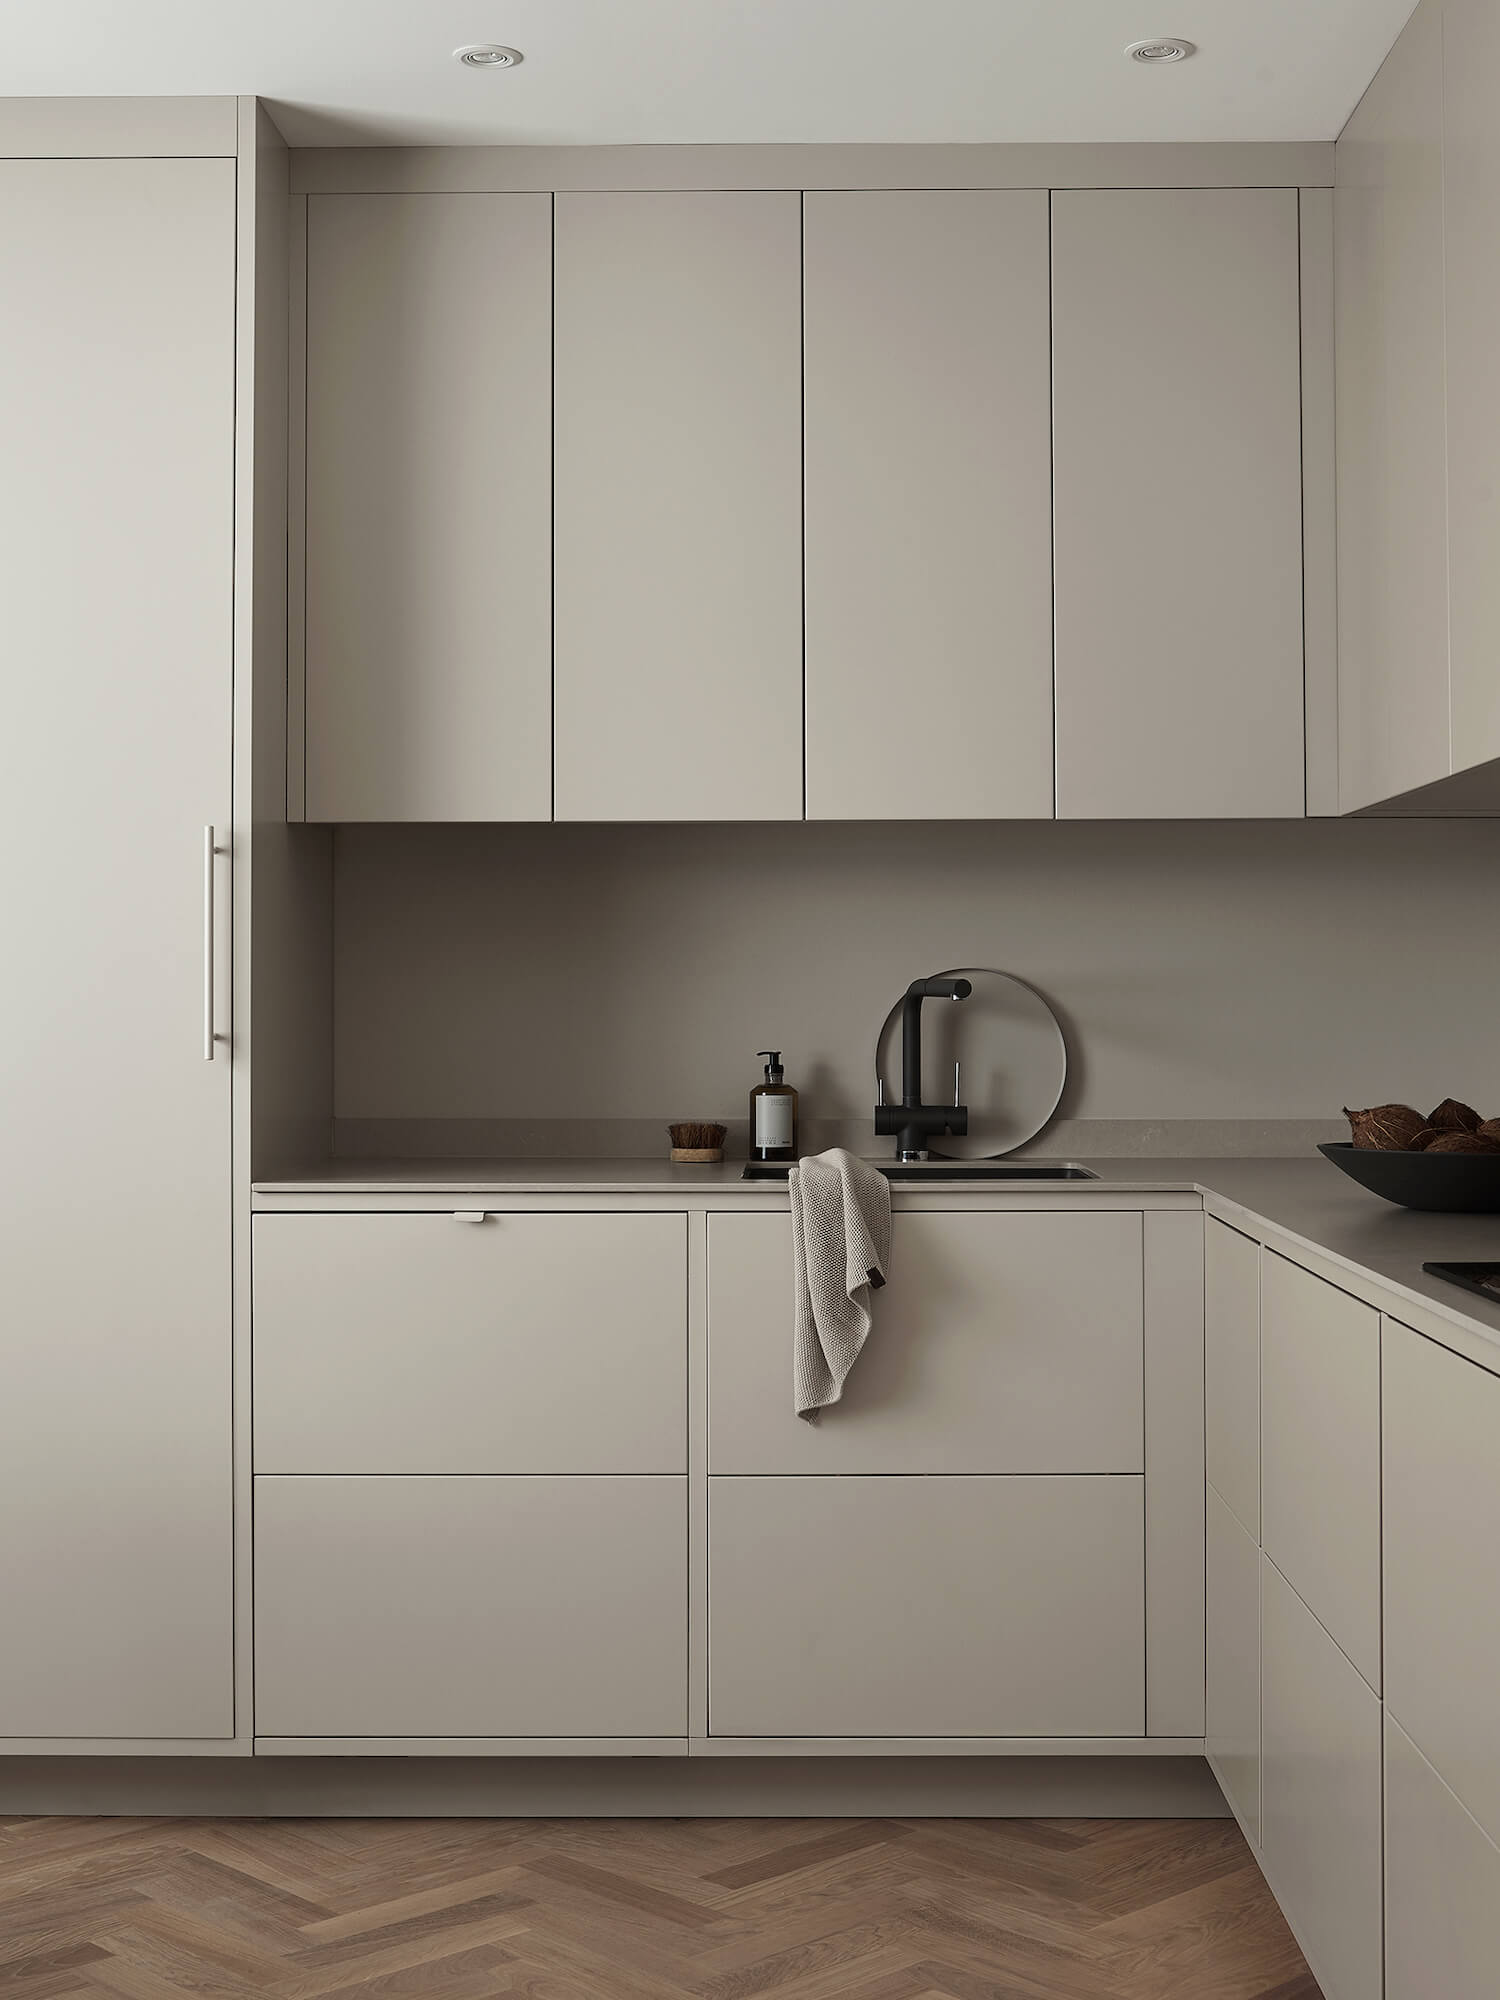 est living nordic style kitchen nordiska kok grey minimalist kitchen